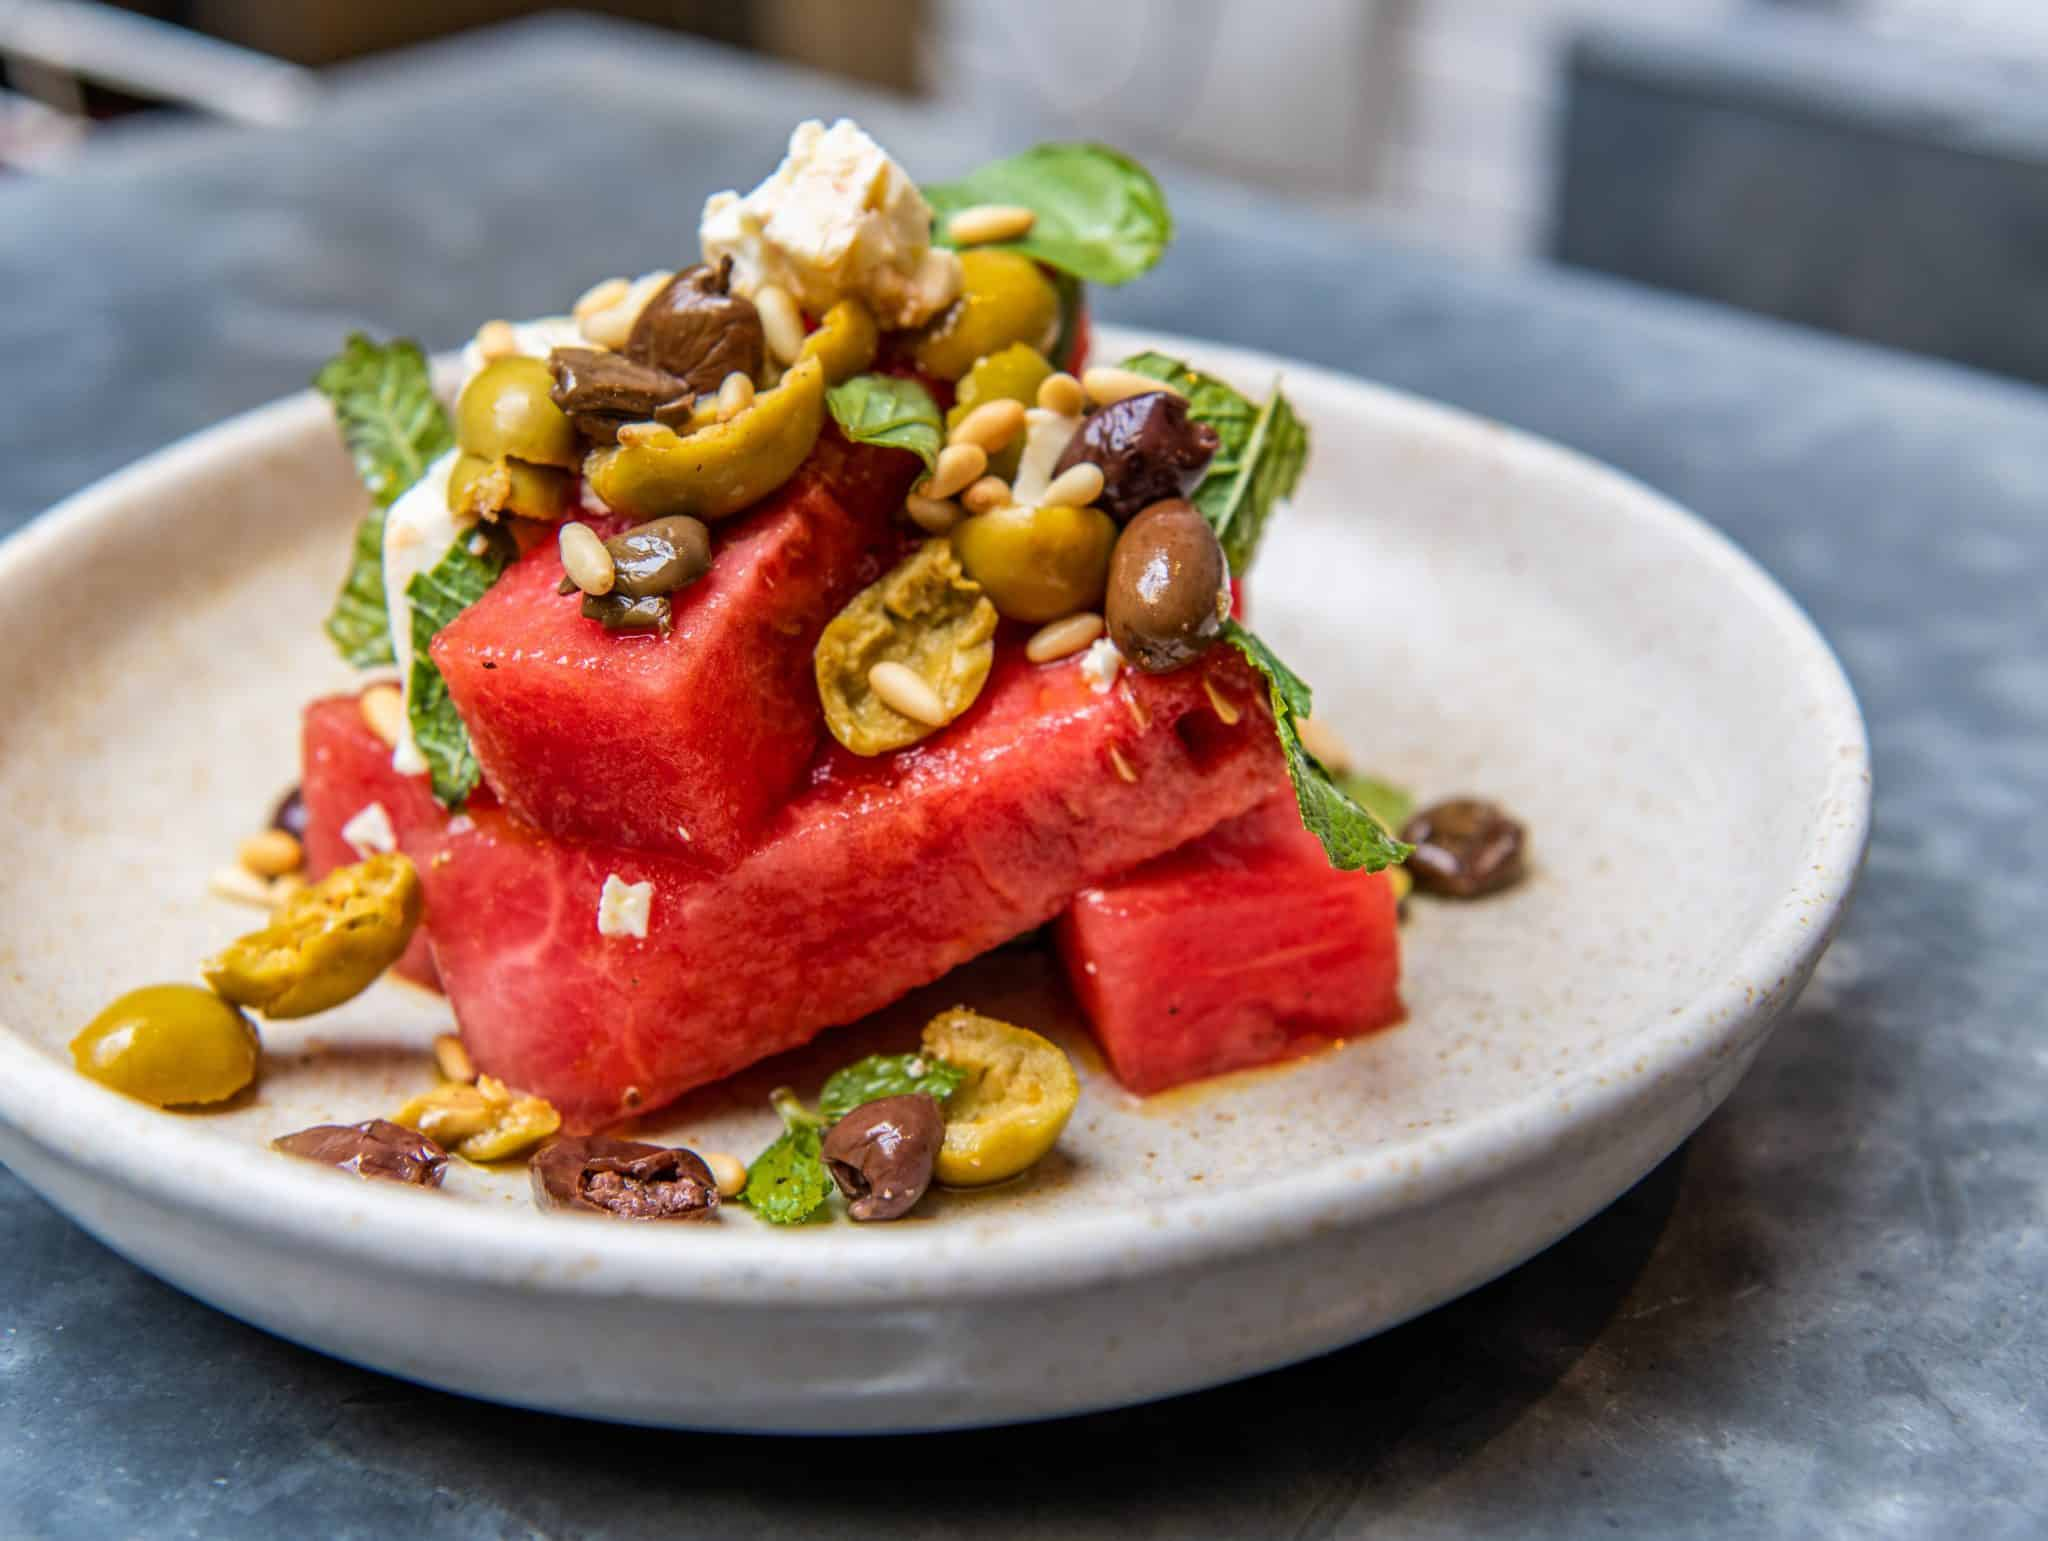 10 Greek Street barbecue recipes watermelon salad | Photo: Nic Crilly-Hargrave